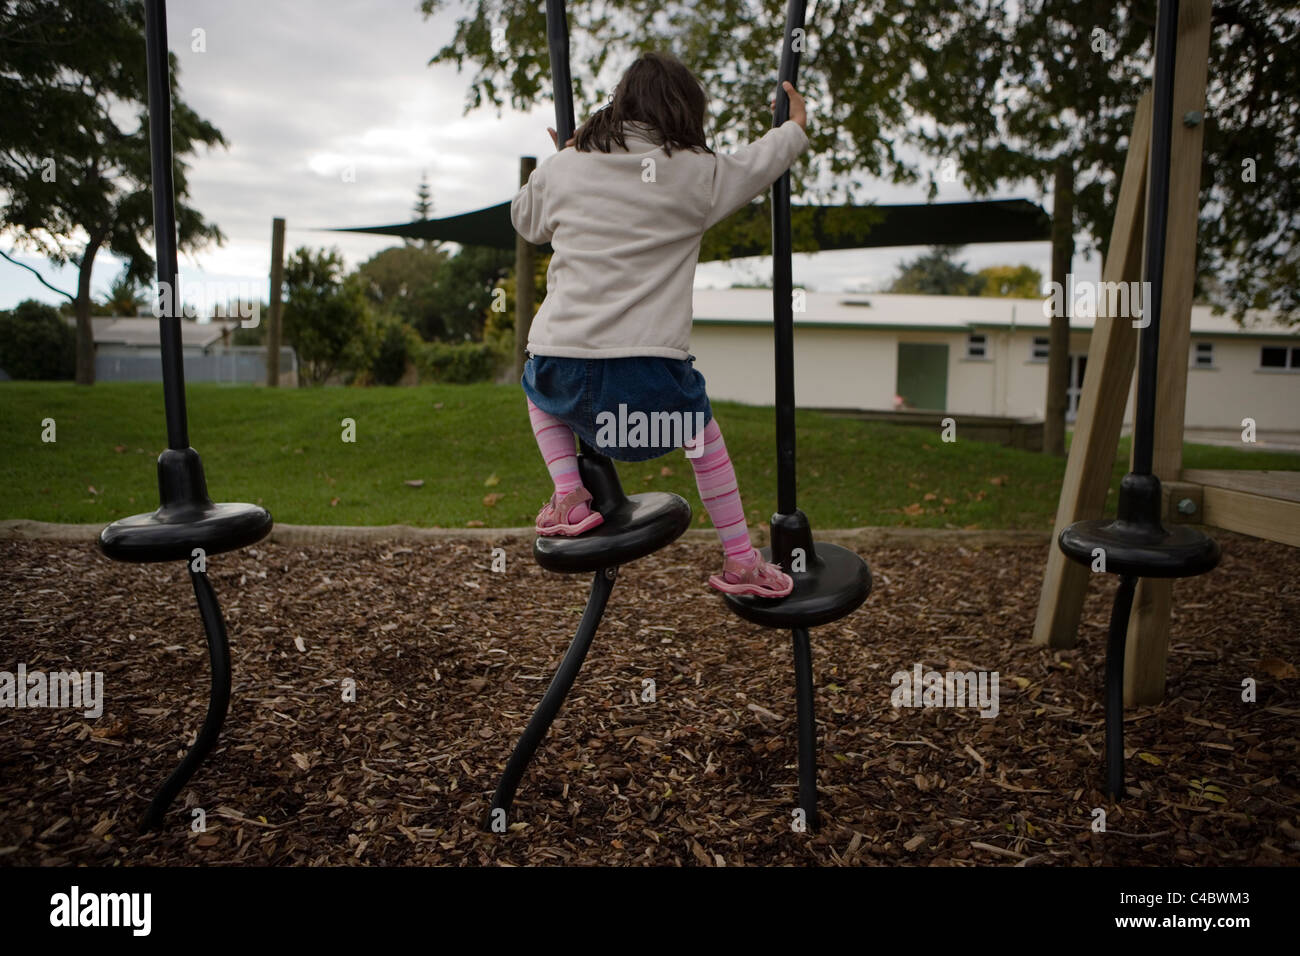 Adventure playground at local school, Palmerston North, New Zealand. - Stock Image